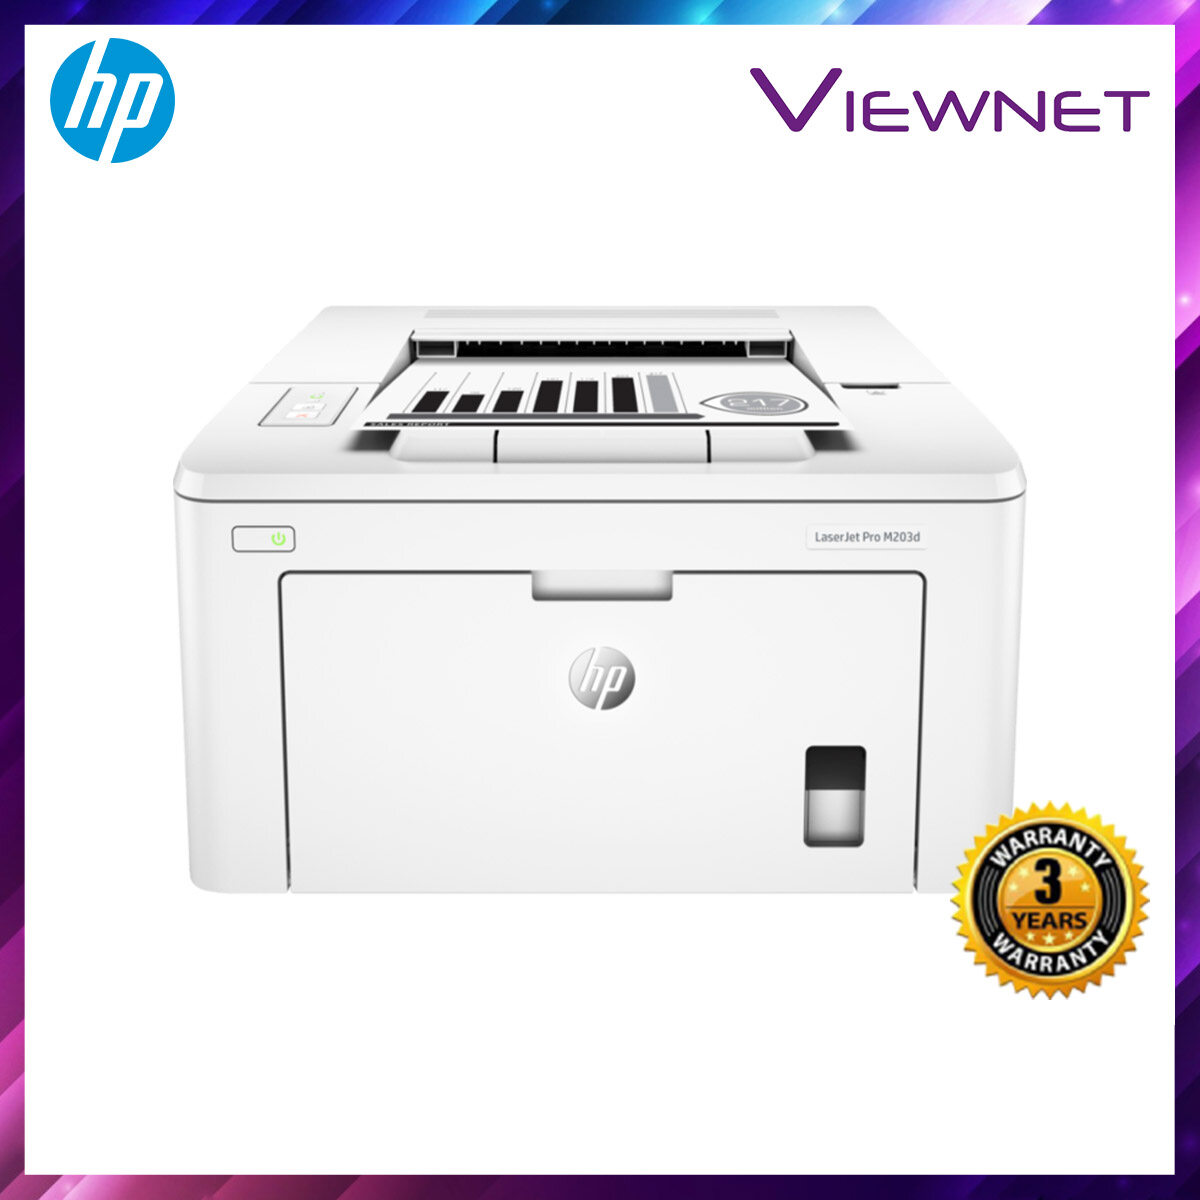 HP LaserJet Pro M203d Printer (Duplex Printing) 3 Years Onsite Warranty with 1-to-1 Unit exchange **NEED TO ONLINE REGISTER**